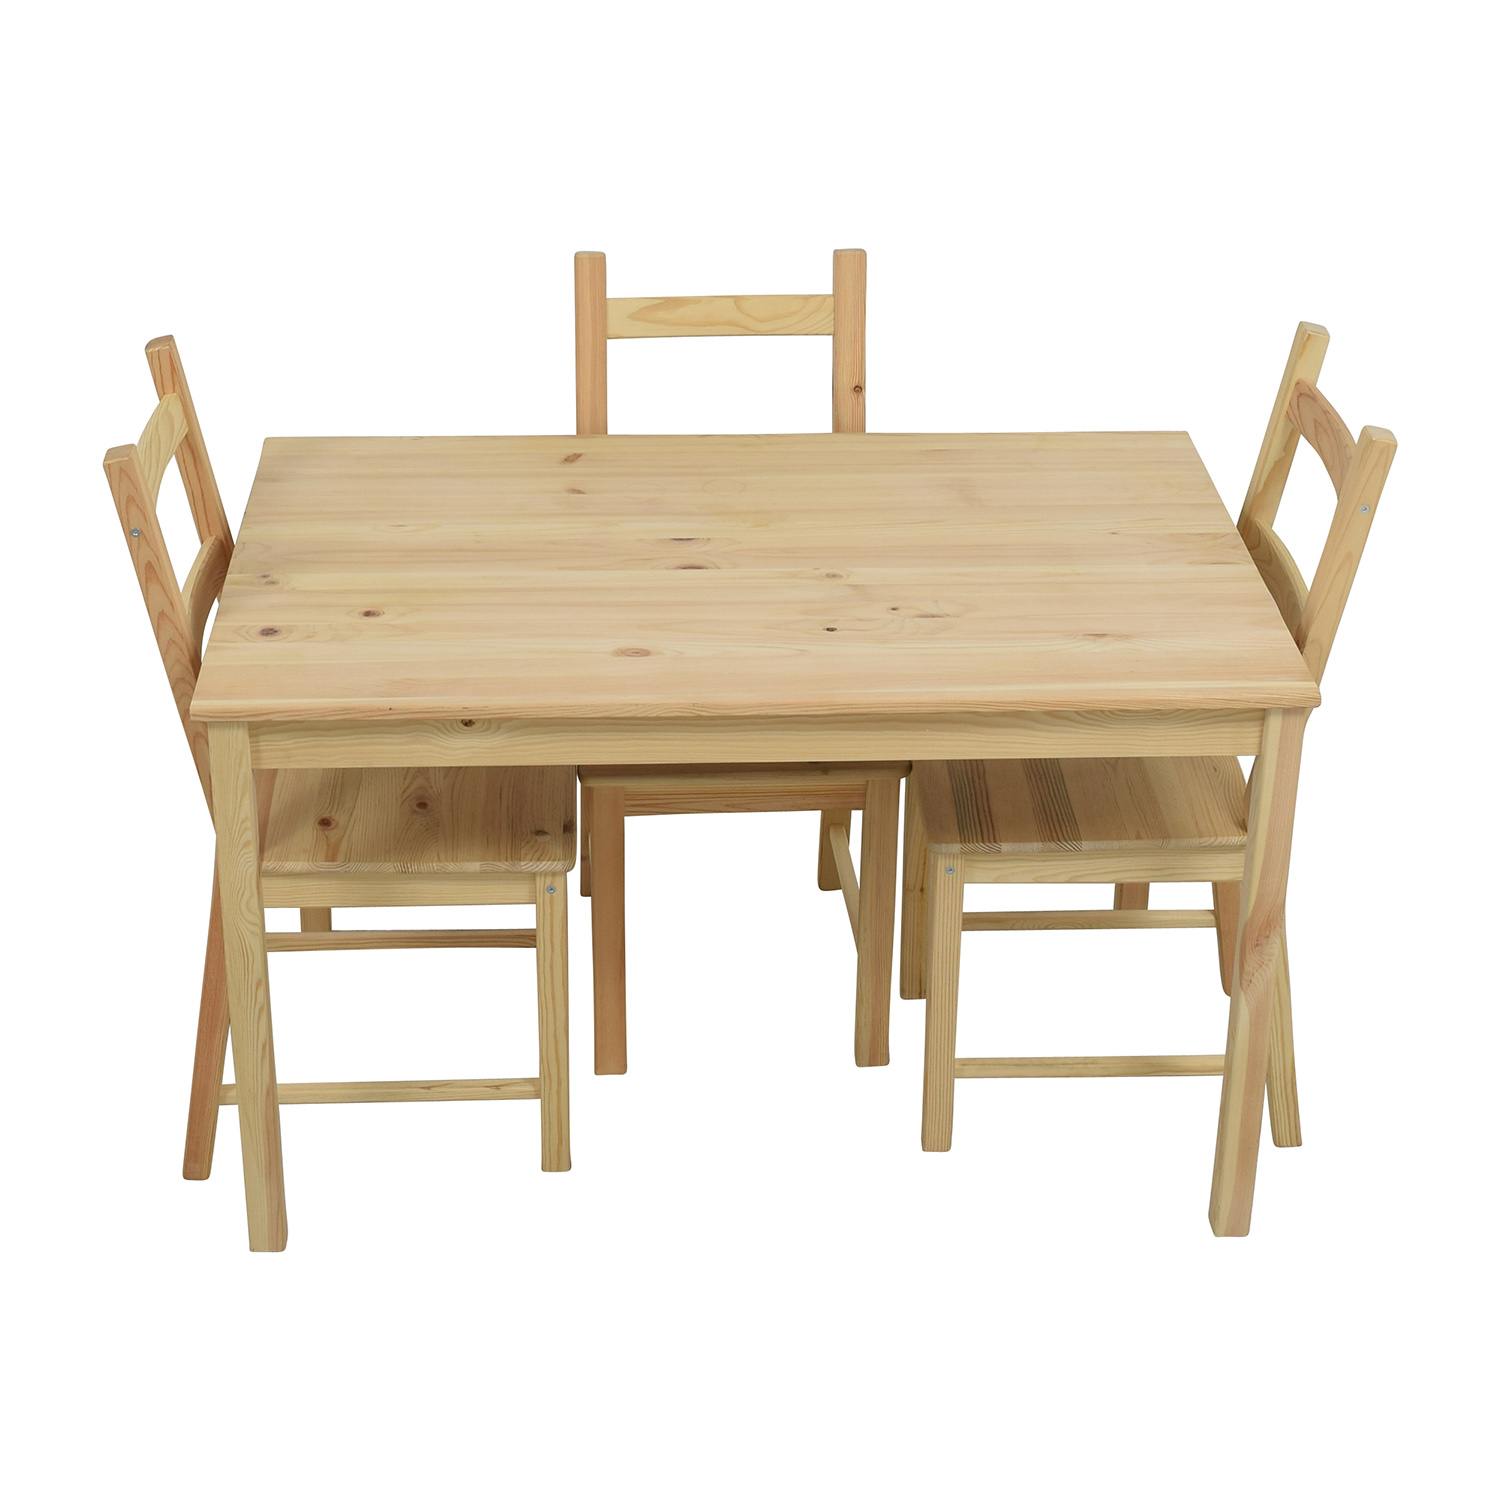 IKEA IKEA INGO Pine Table With IVAR Pine Chairs Dimensions